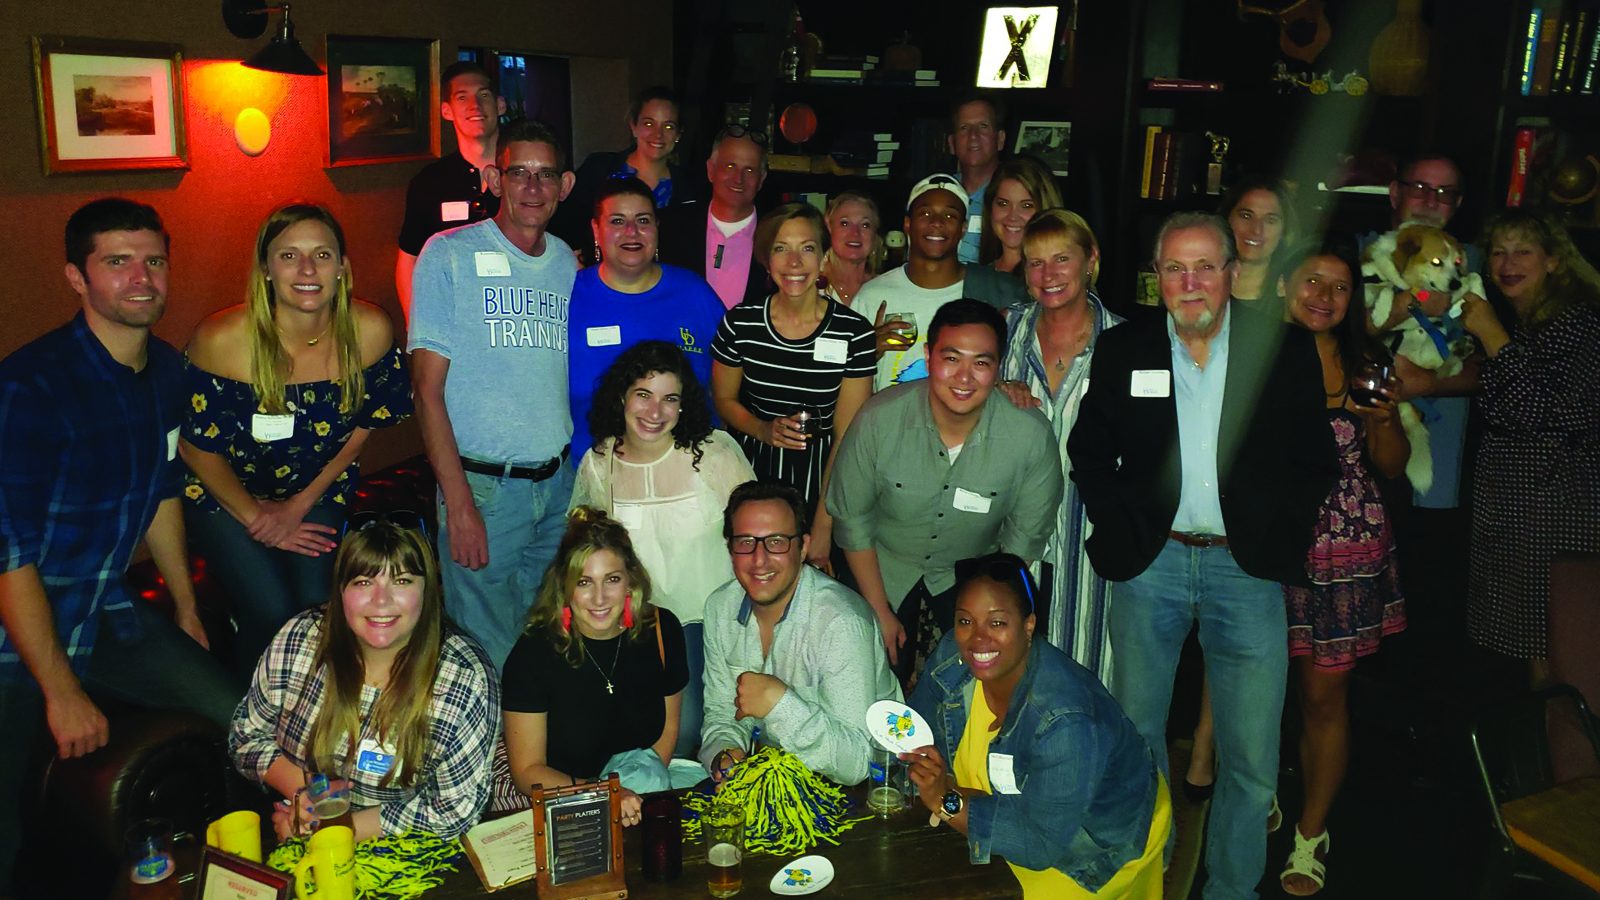 University of Delaware San Francisco Bay Area Alumni Events and Club Members